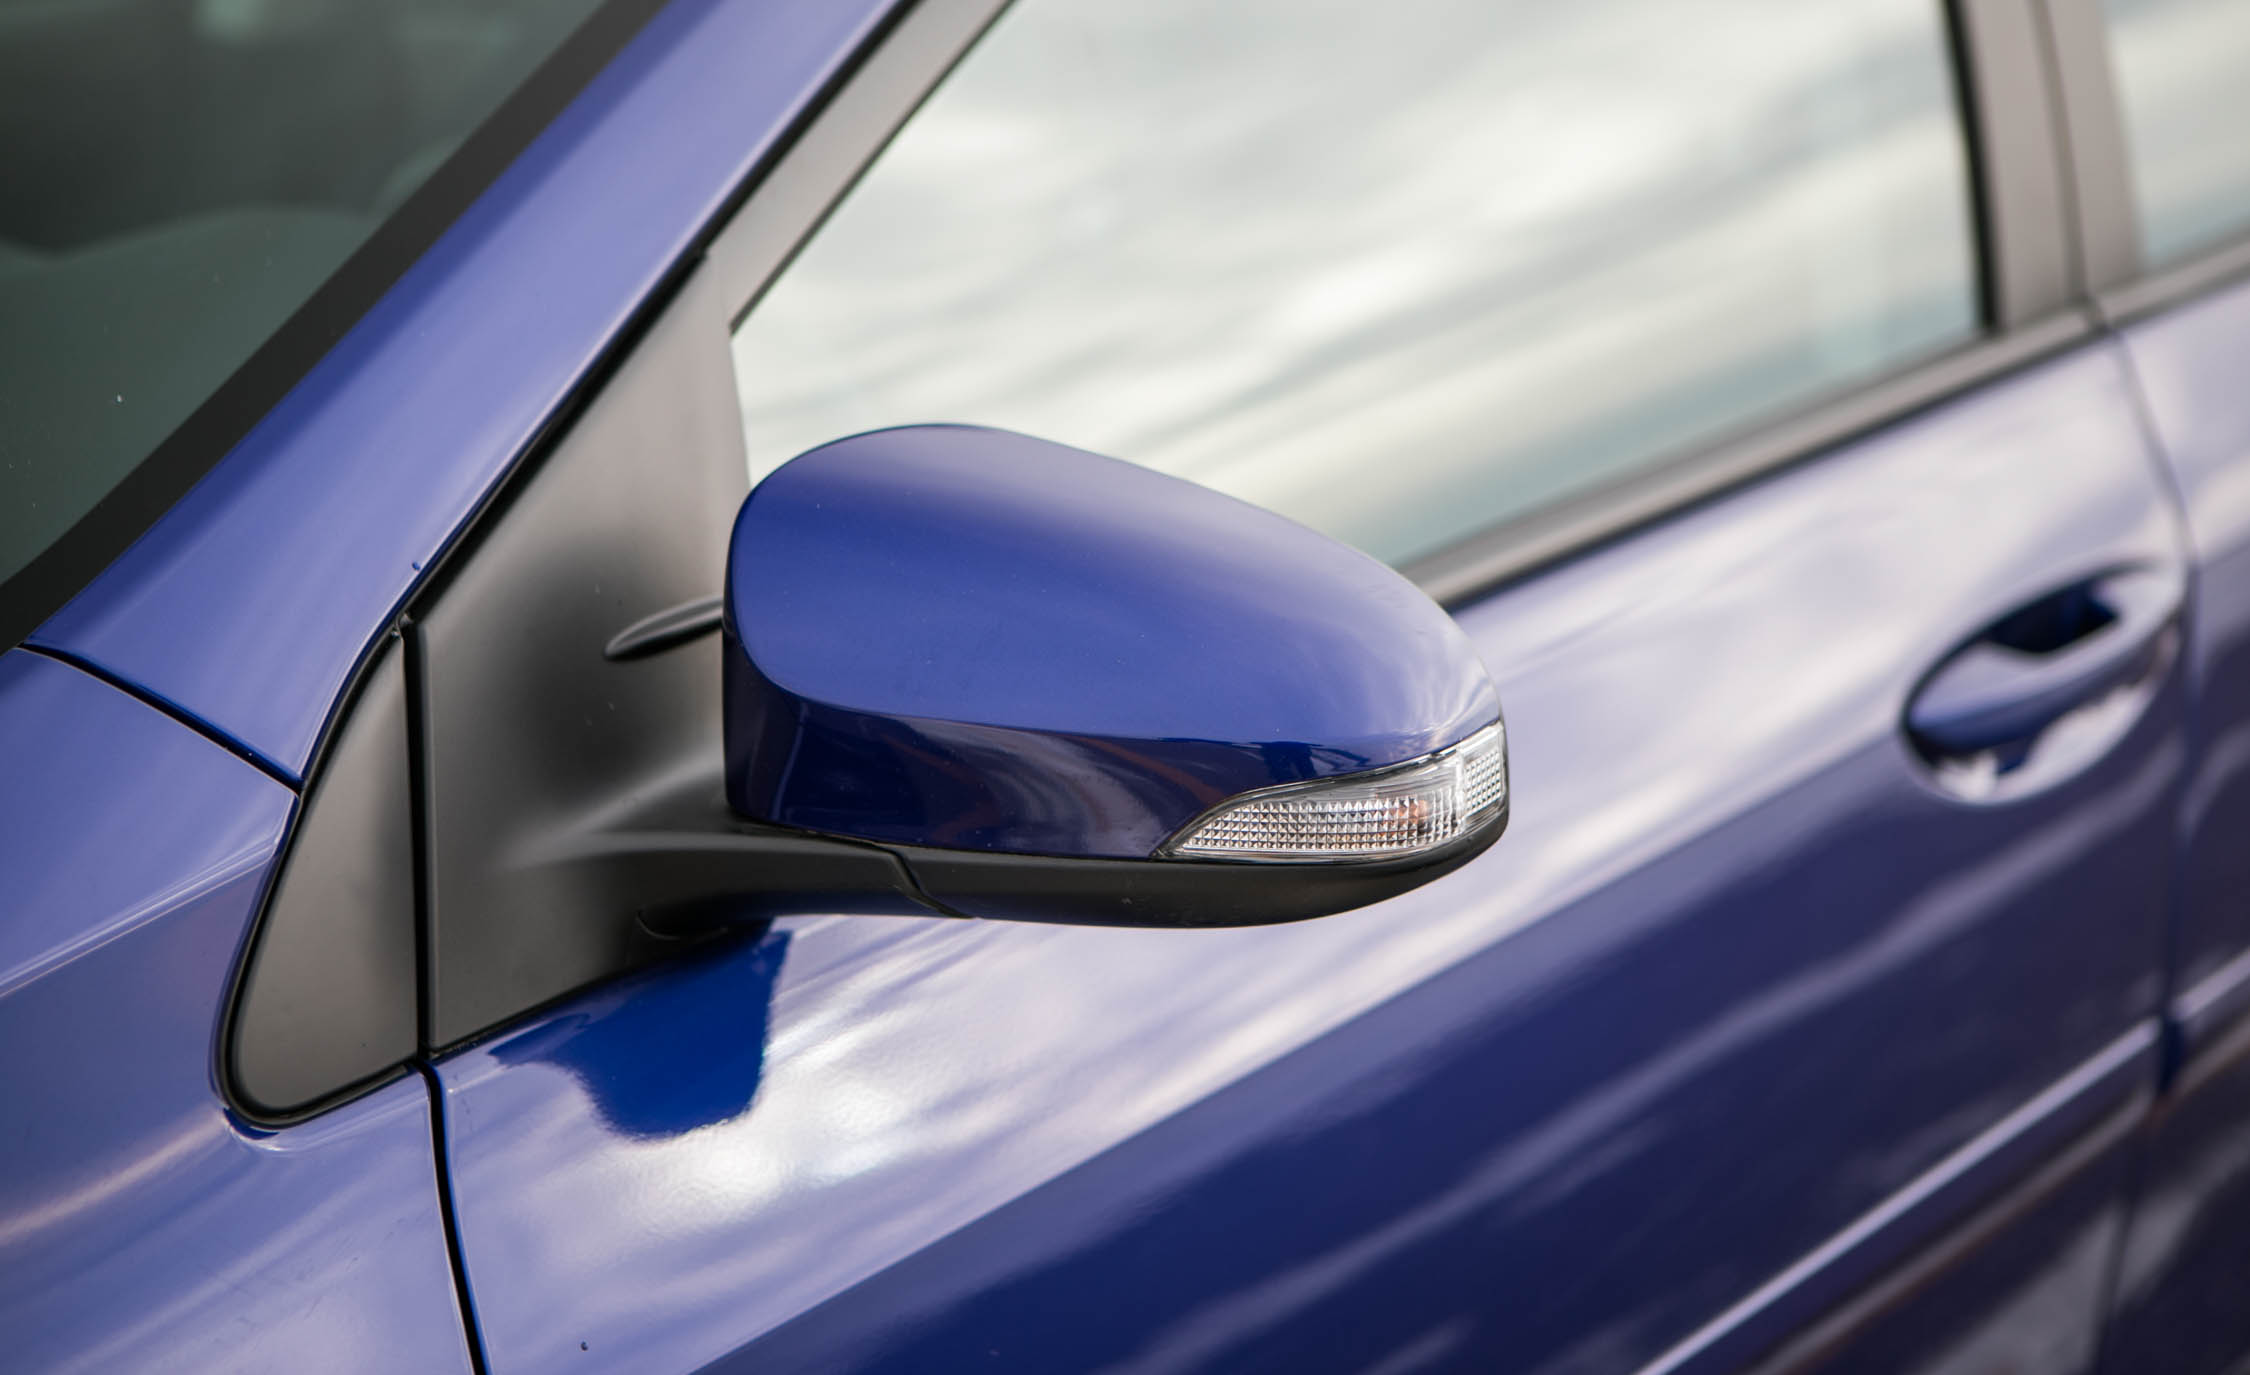 2017 Toyota Corolla XSE Exterior View Side Mirror (View 66 of 75)